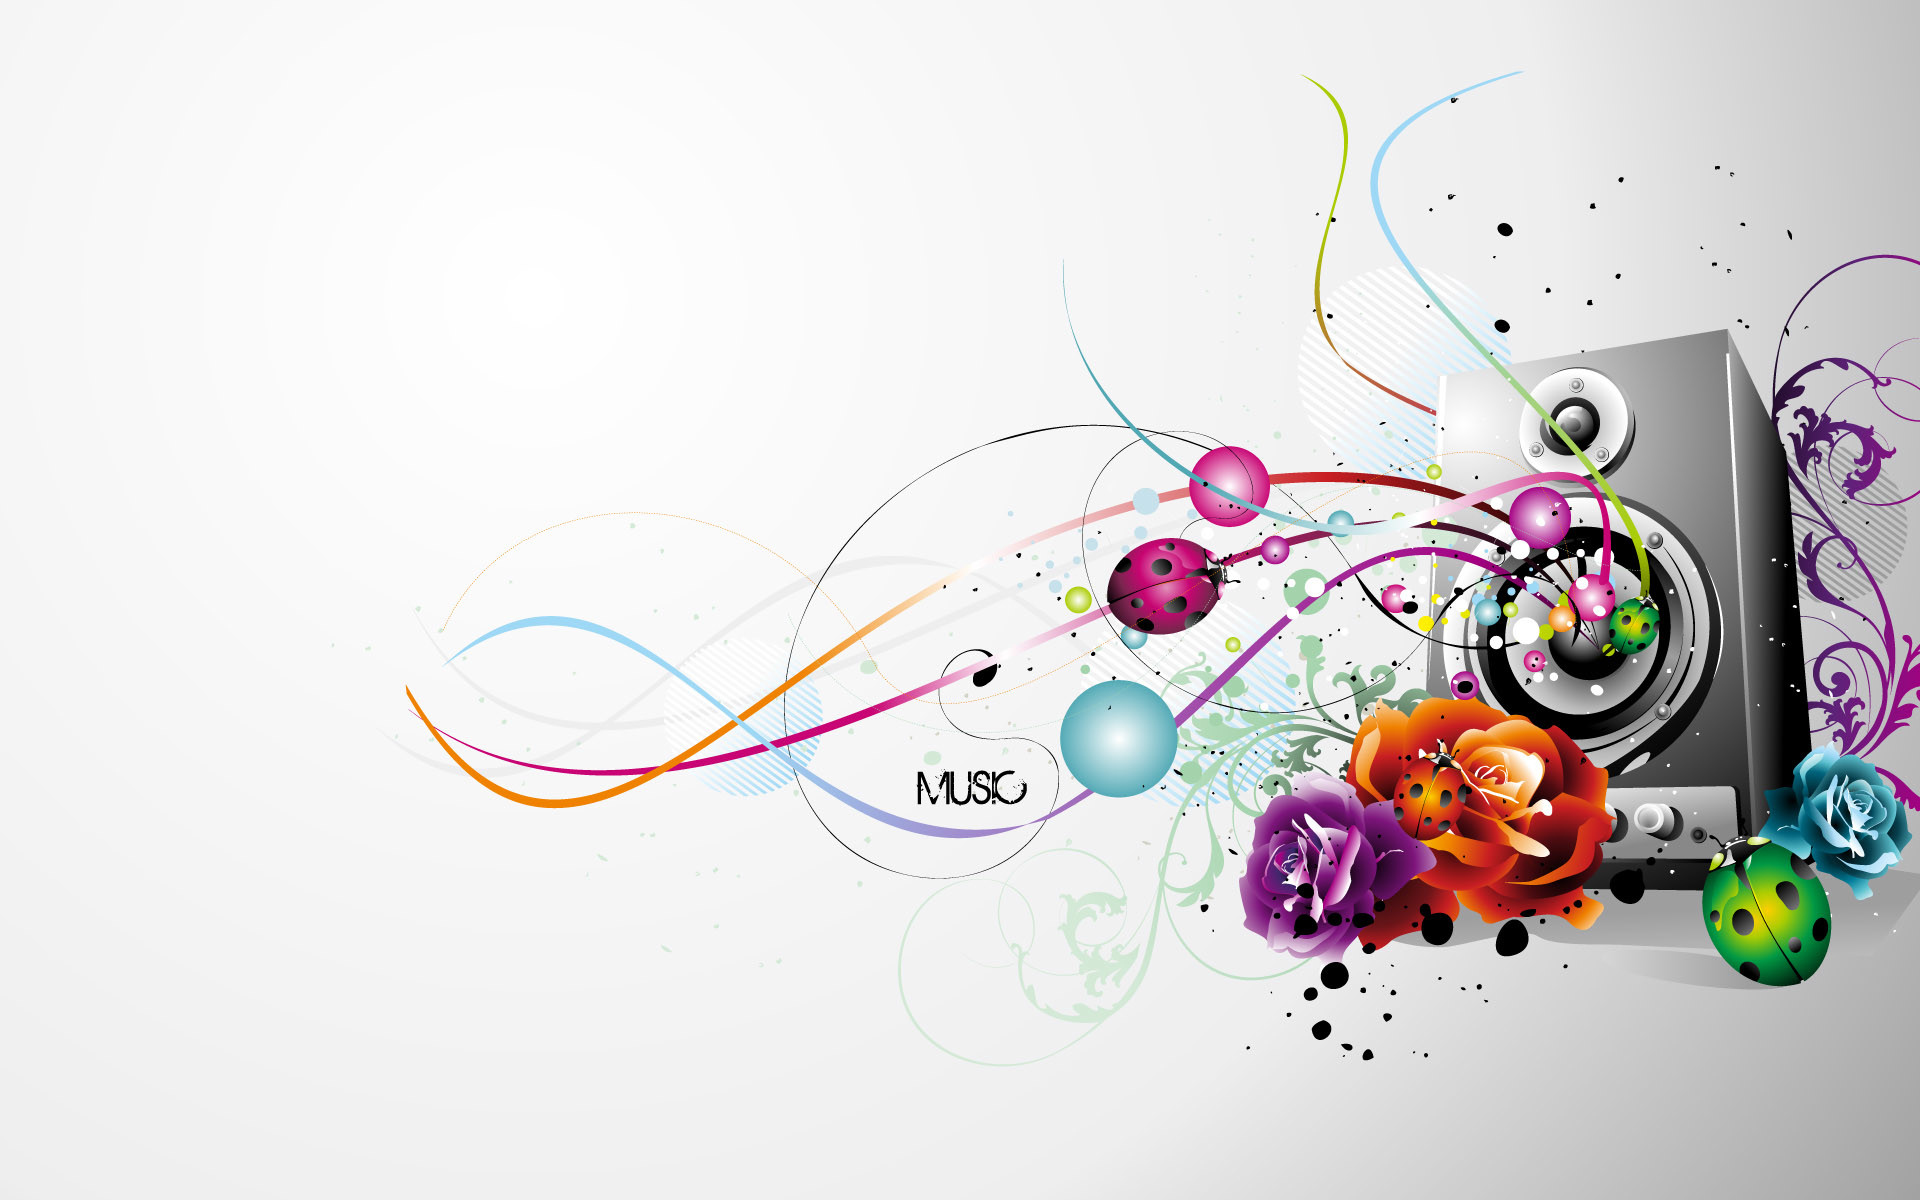 Music Abstract Wallpaper – Wallpaper, High Definition, High Quality .